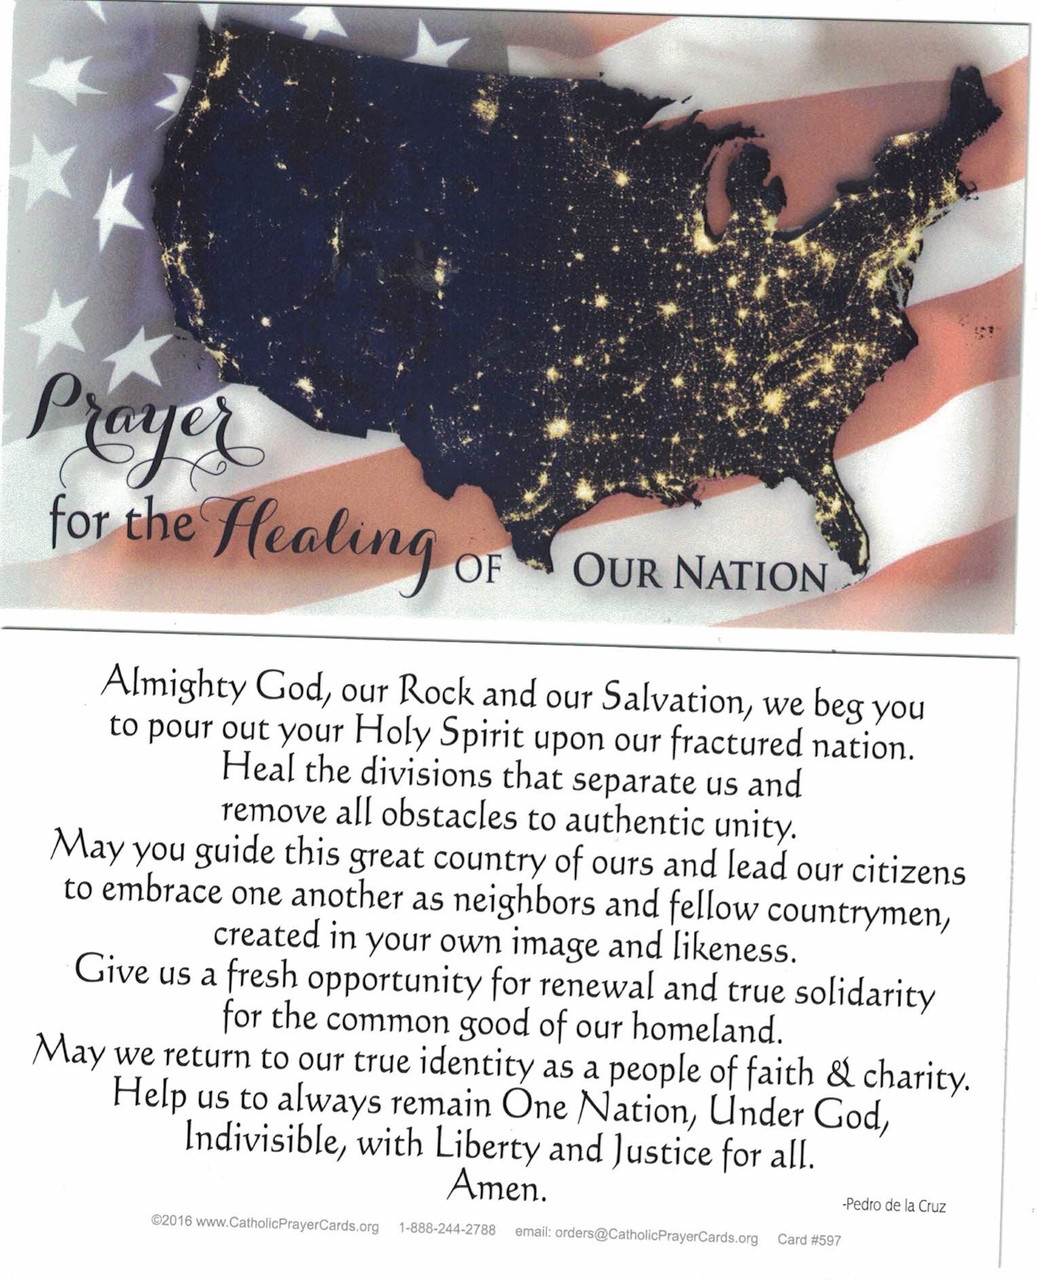 Prayer for Healing of the United States of America